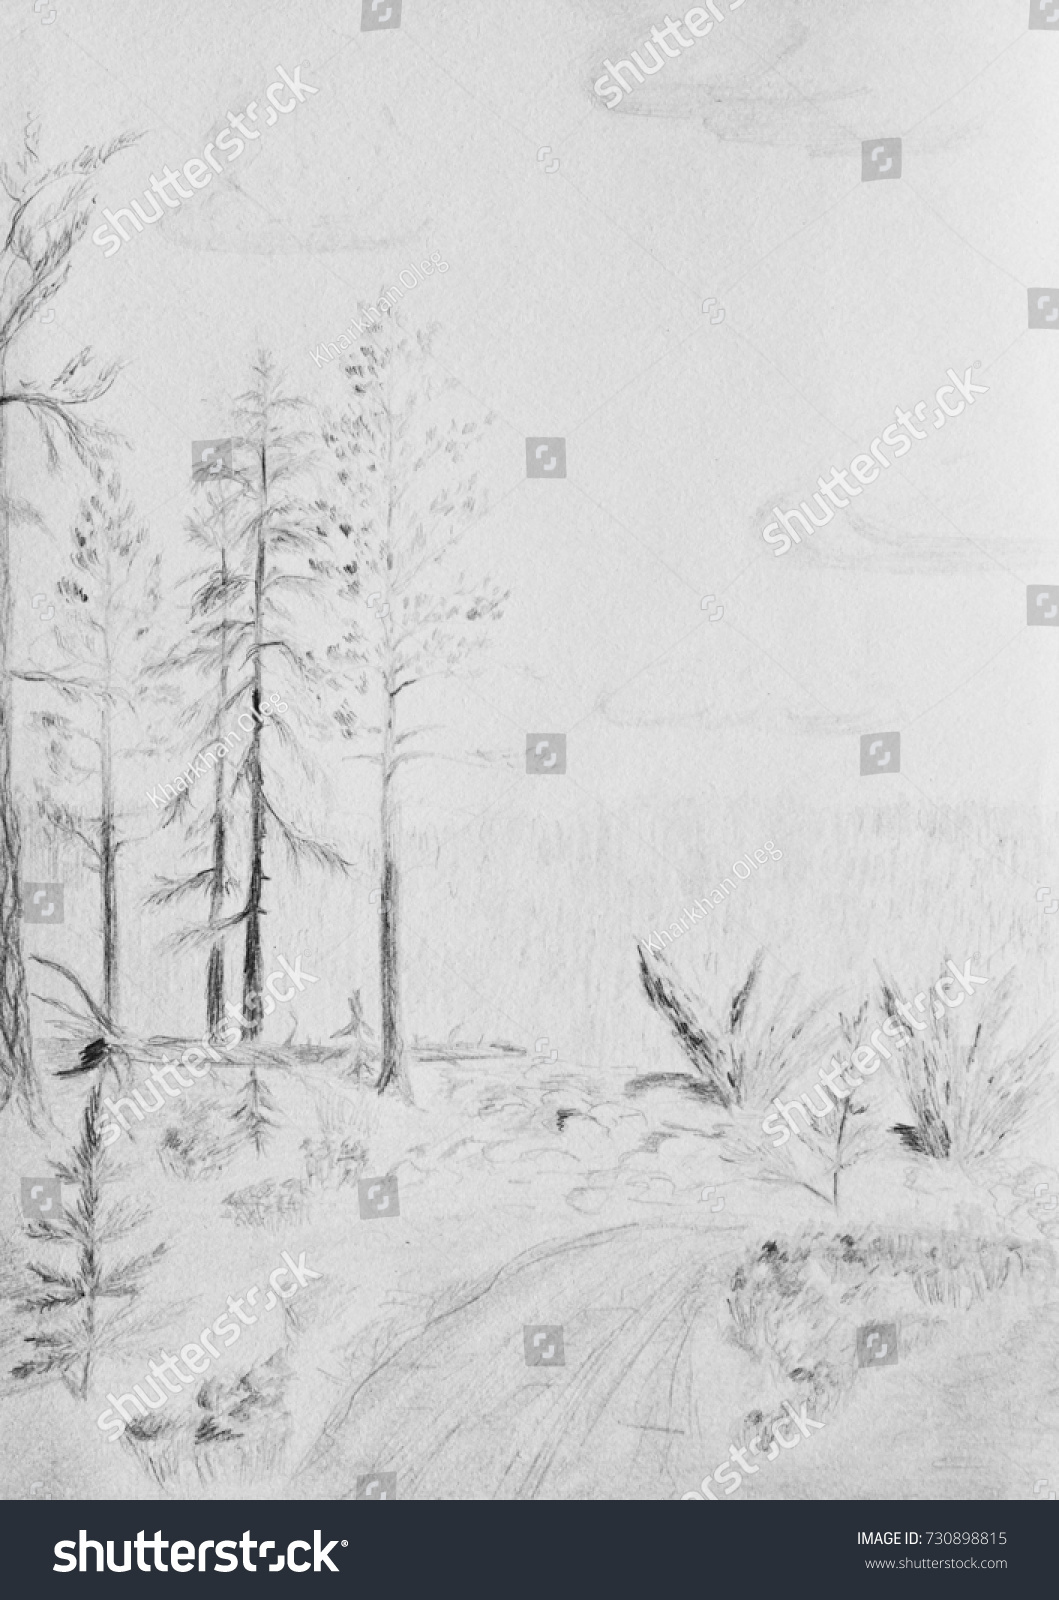 Summer Landscape With Pine Trees Pencil Drawing